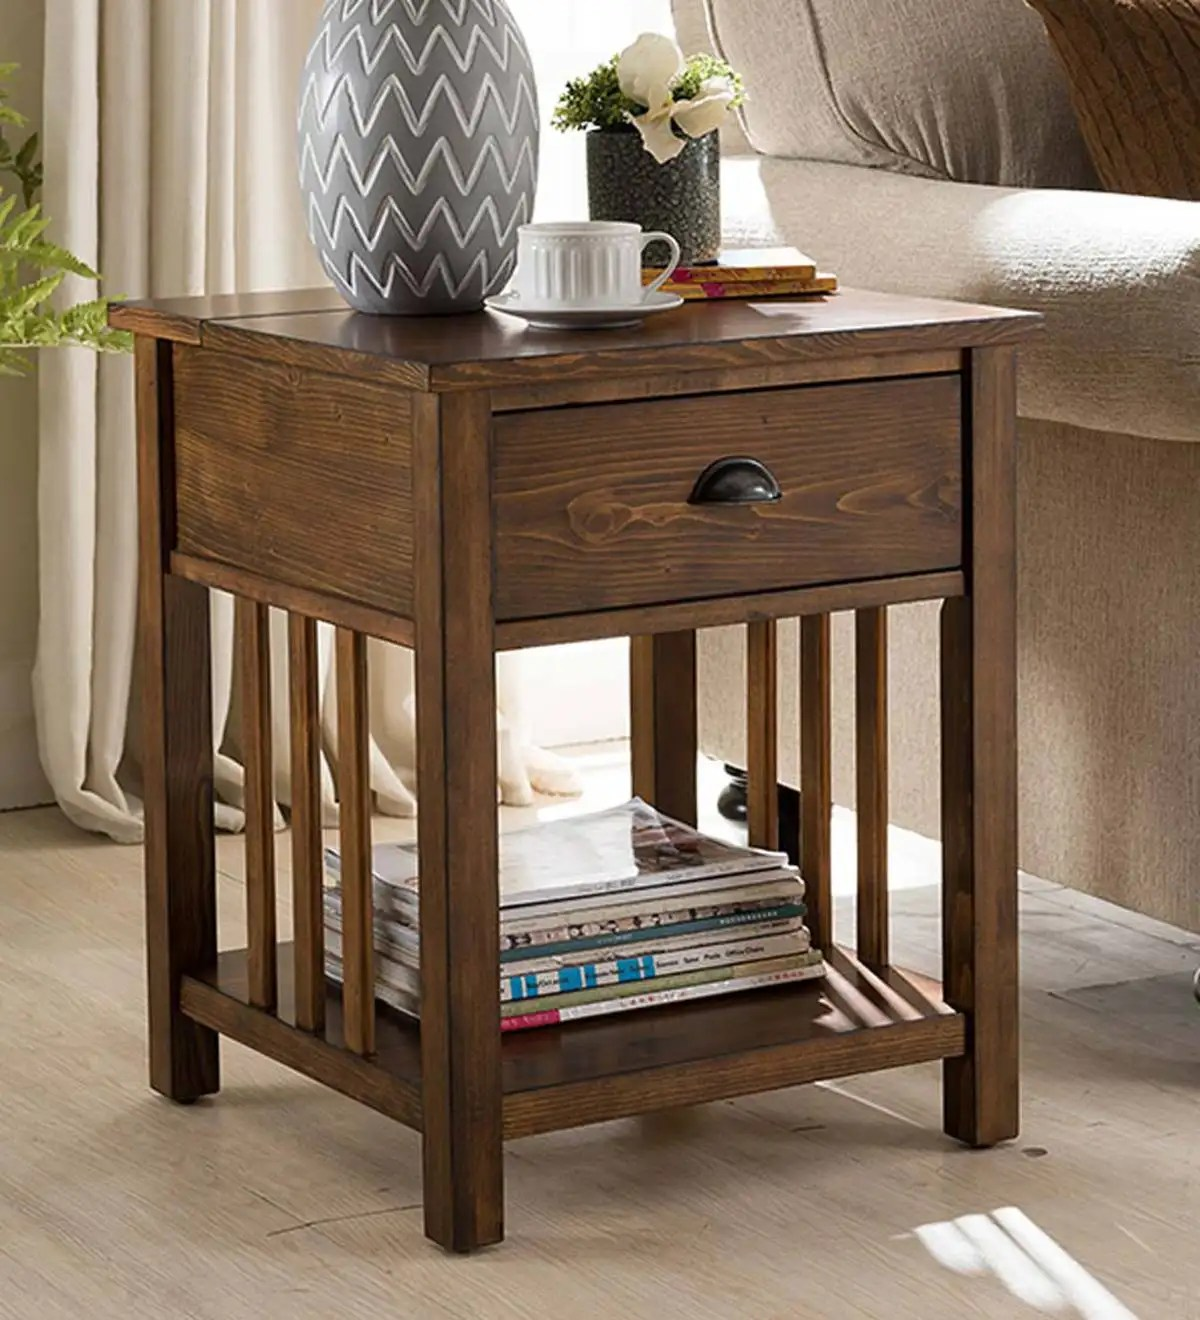 Arts And Crafts Mission Side Table With Charging Station Oak Plowhearth